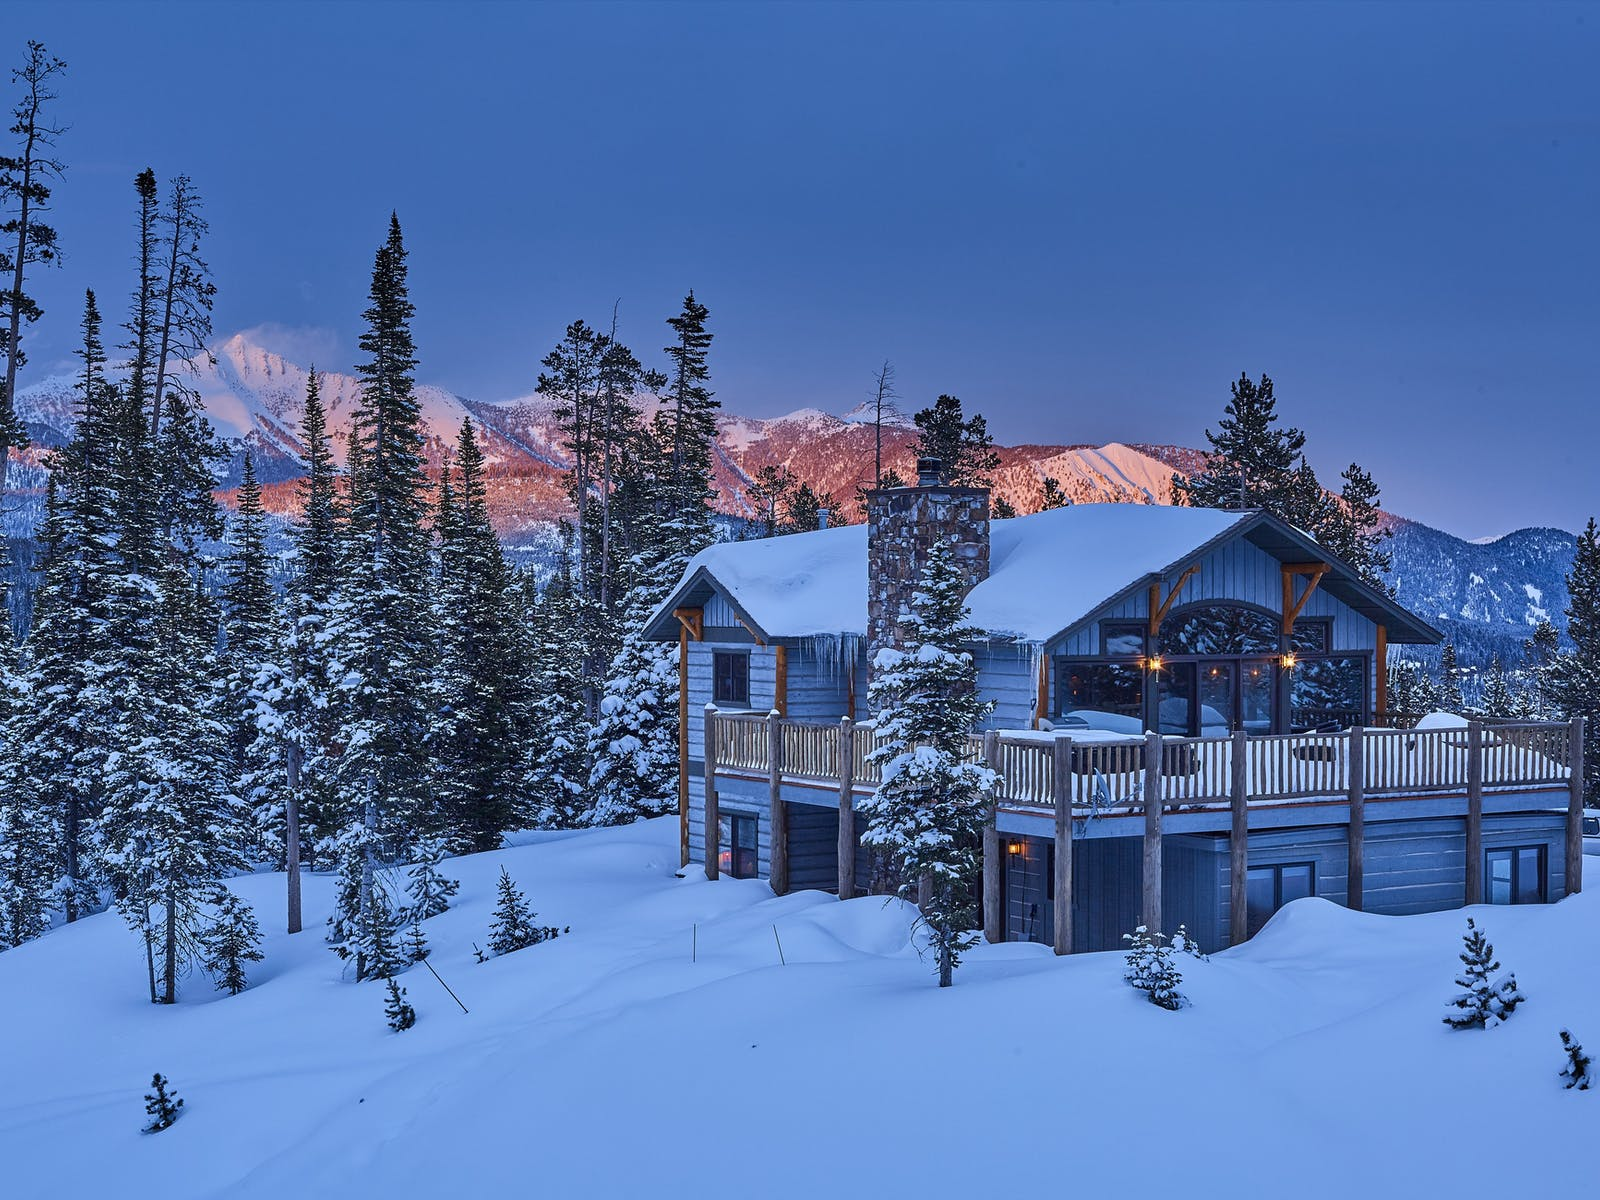 Beautiful view of Big Sky, MT vacation home surrounded by snowy pines and mountains